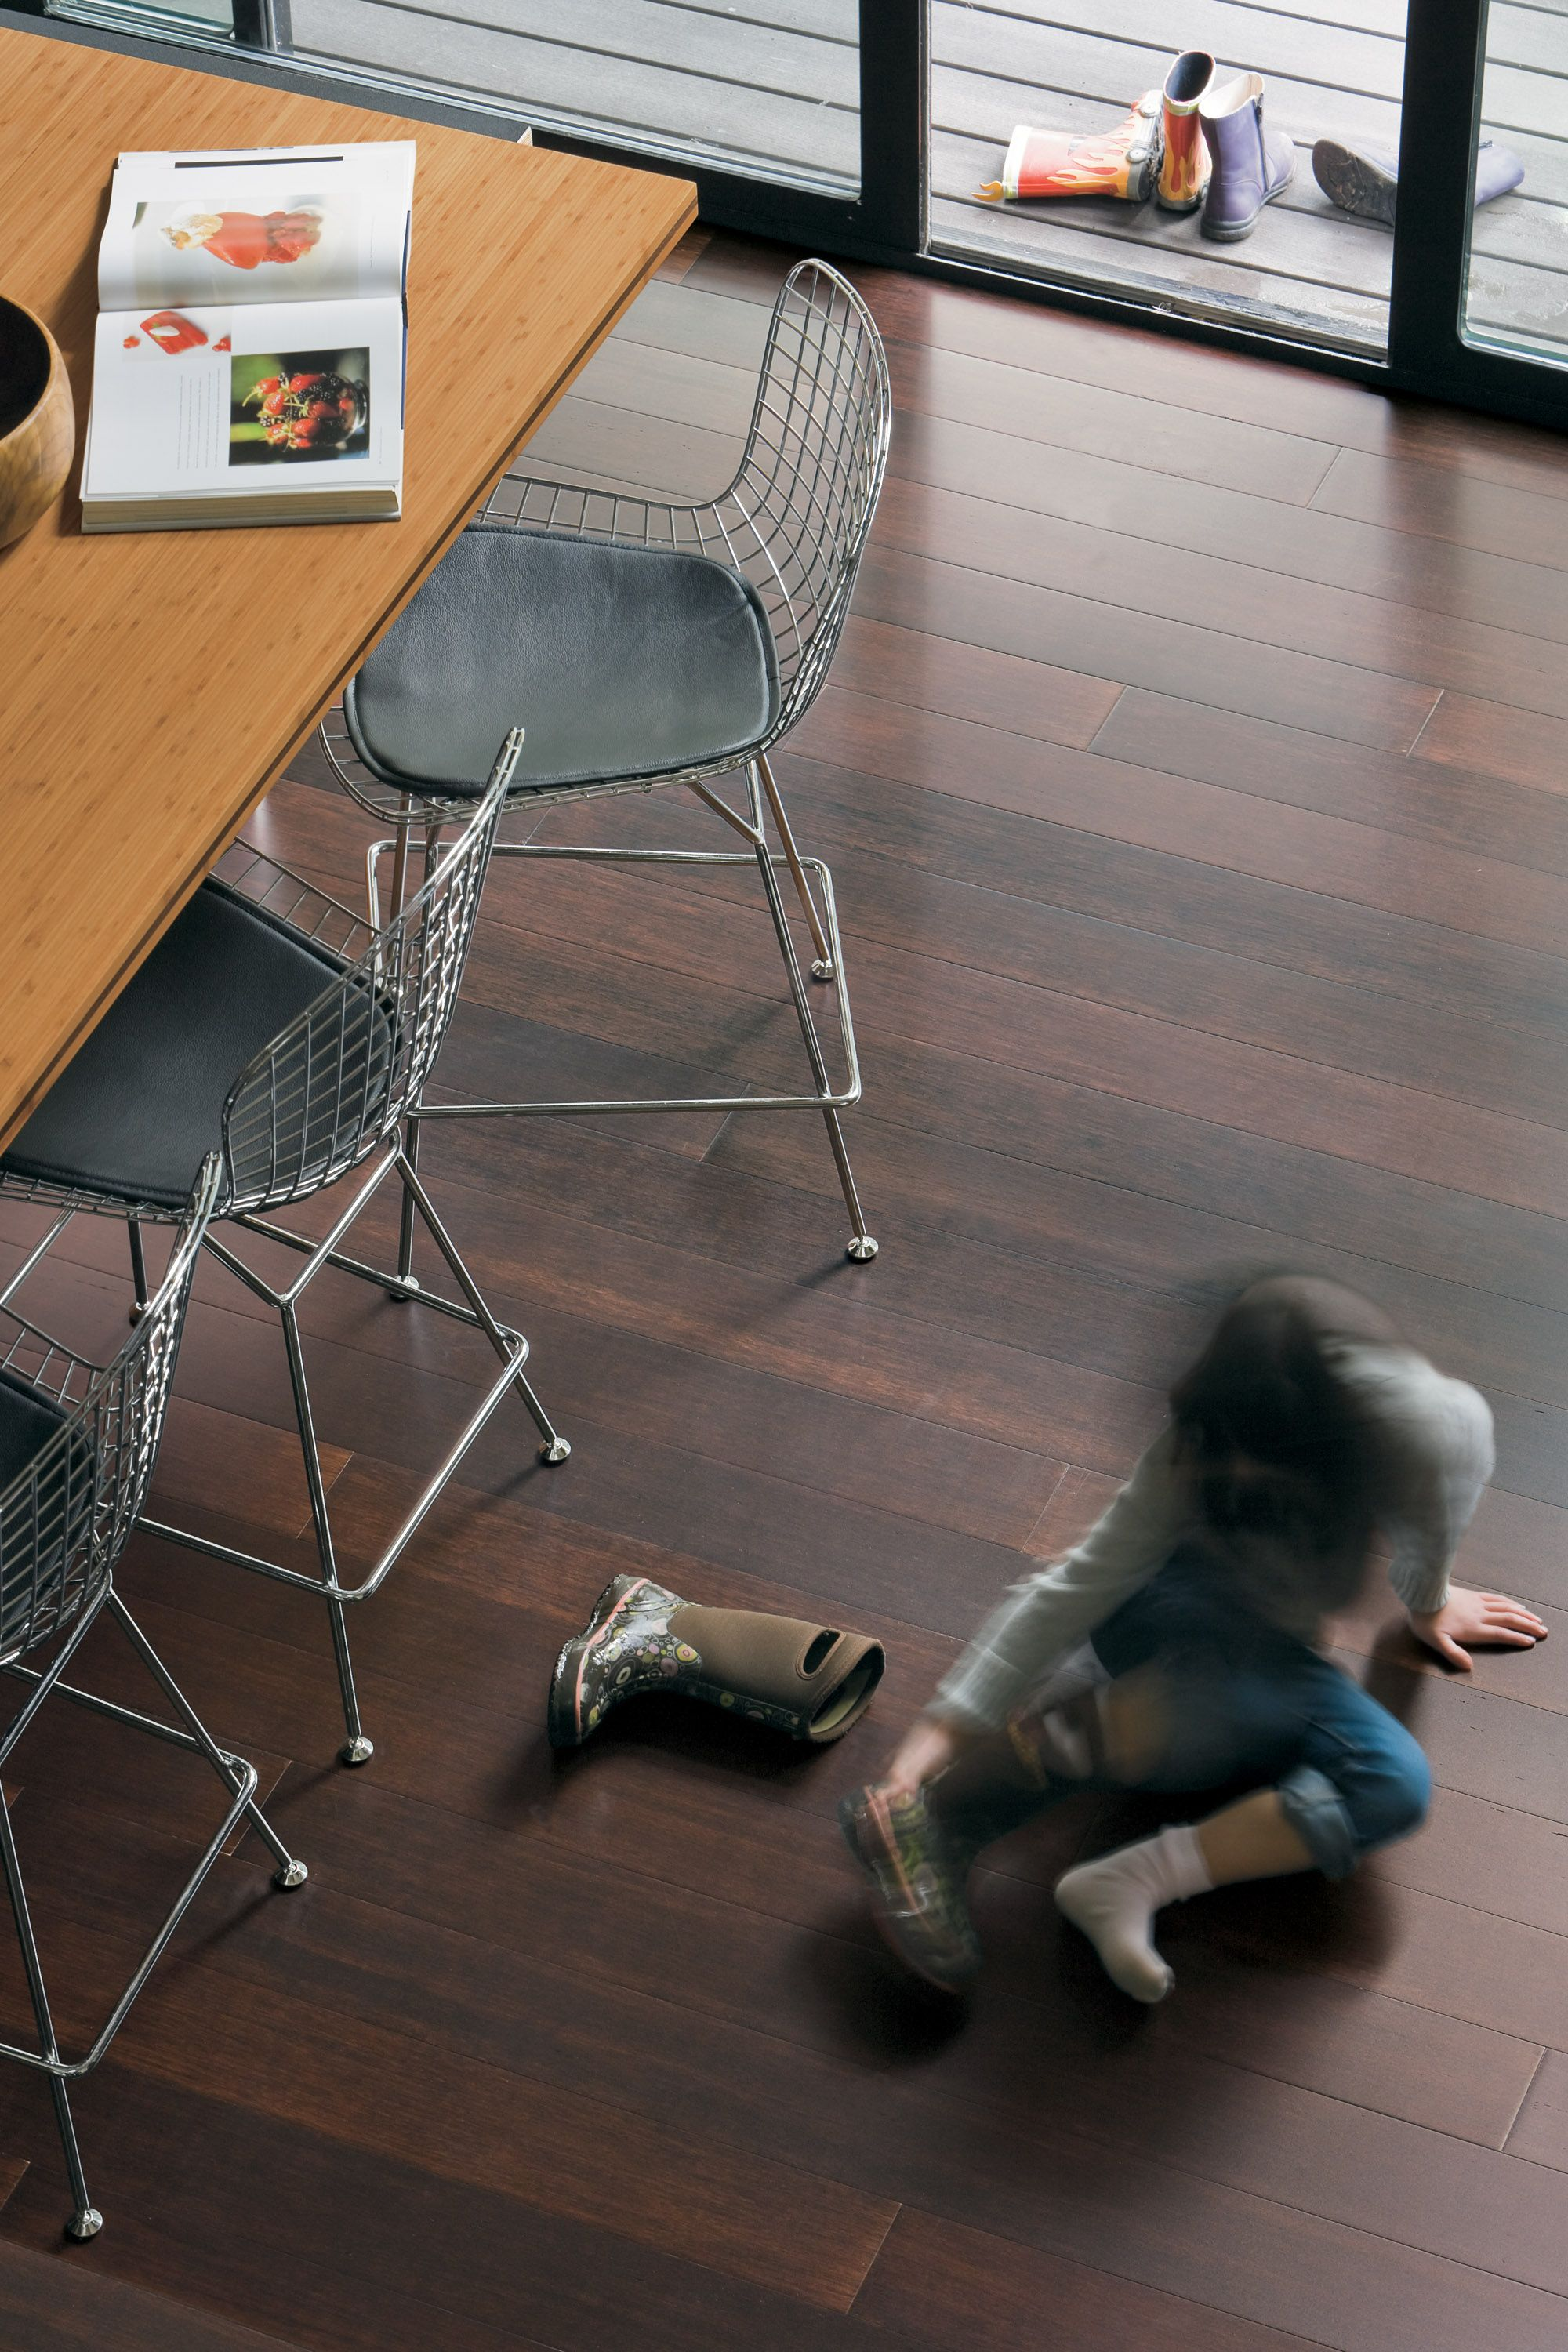 Teragren Xcora Portfolio Collection Flooring - Darby Brown: Save Up to $1500 now through 10/31/2013 (http://teragren.com/specialoffer.php)